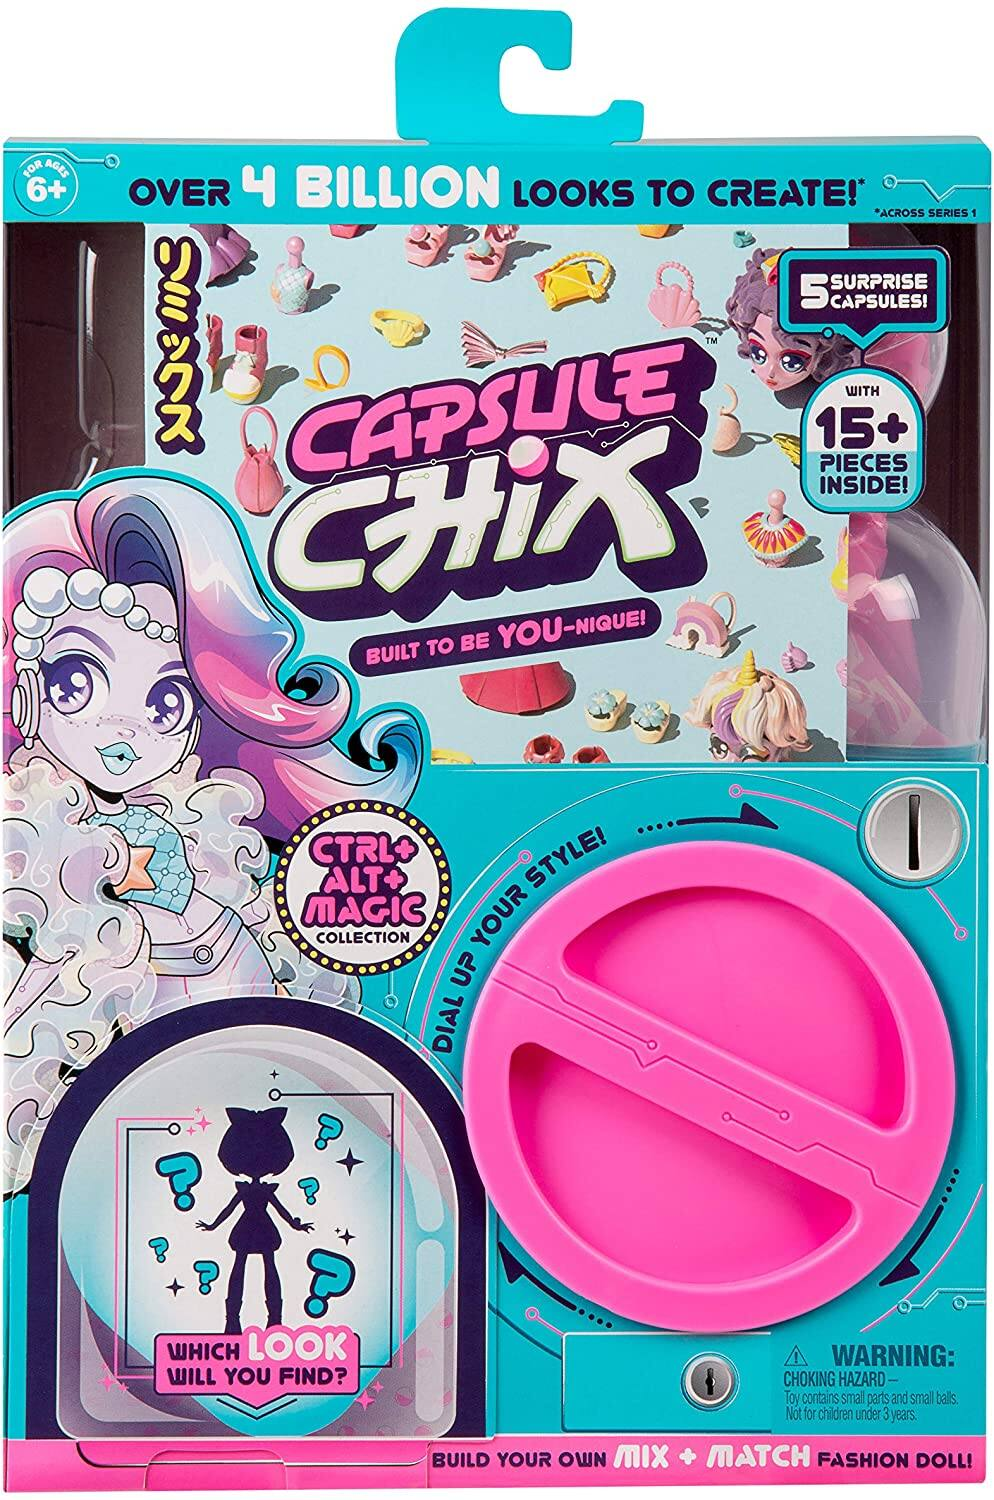 "Capsule Chix Giga Glam Collection (Giga Glam) 4.5"" Doll & Accessories $3.94 & More - Amazon"